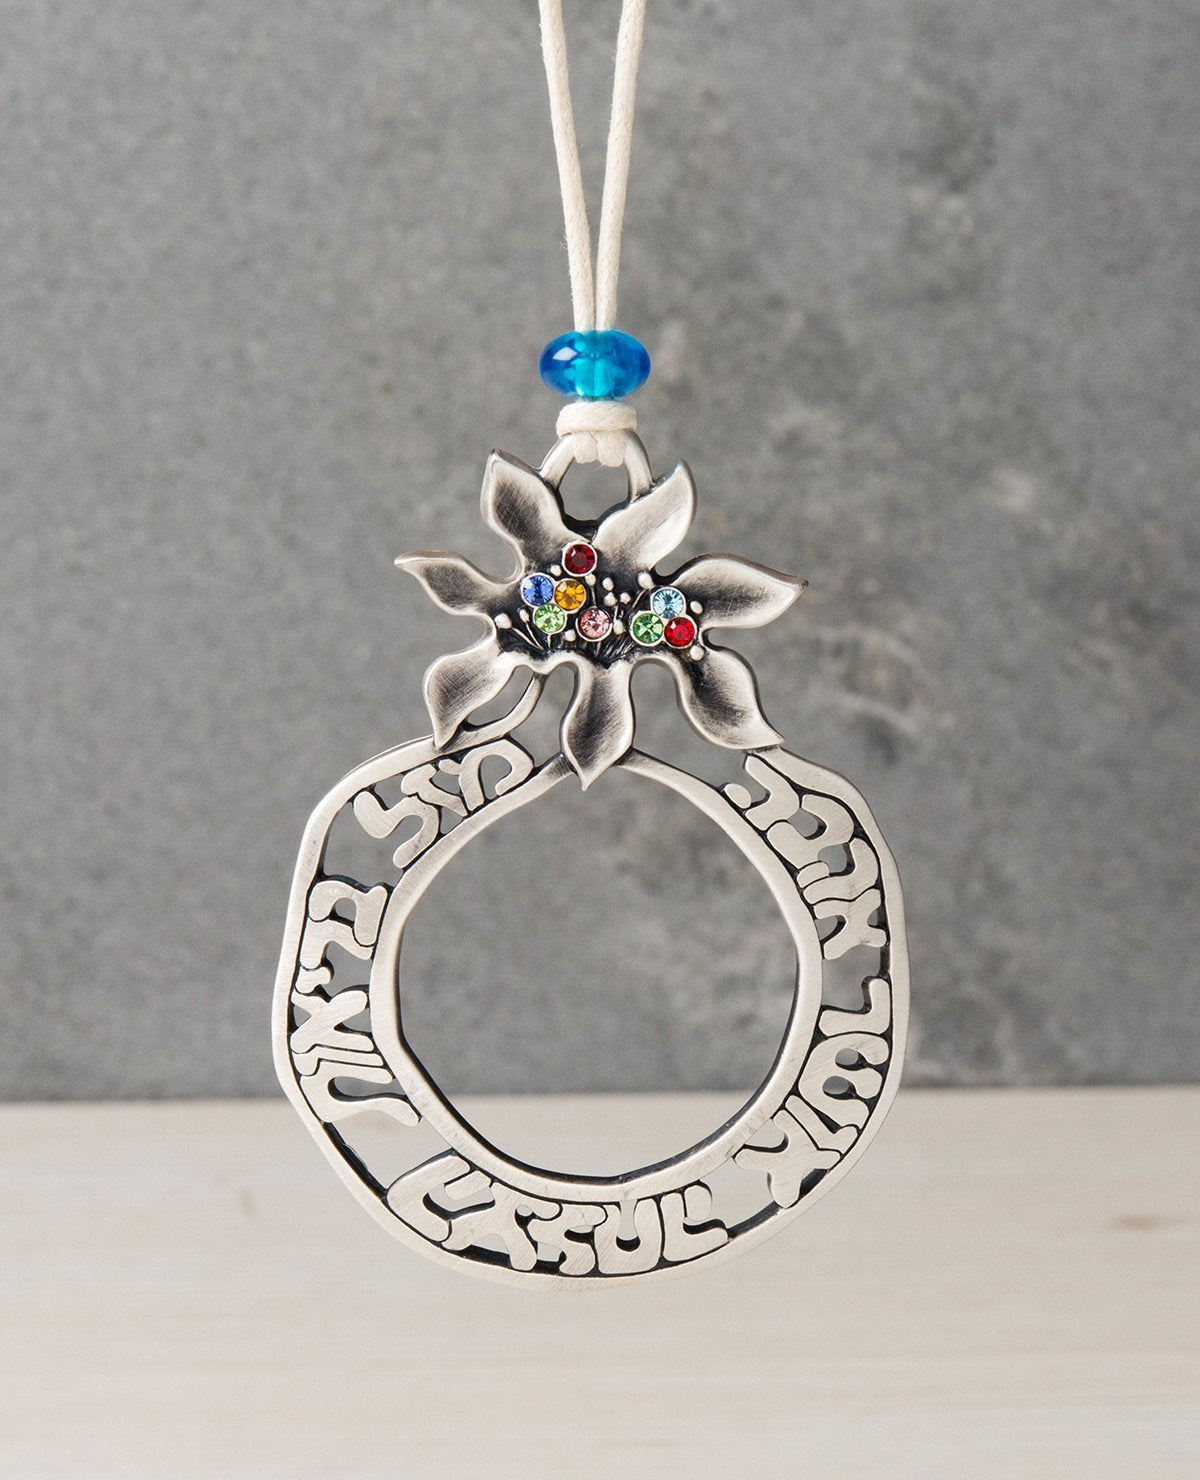 A beautifully designed Azure pomegranate hanging ornament with a Home Blessing. The pomegranate is coated in sterling silver, hollow at the center and its edges are decorated with the blessing words of: luck, health, success, happiness and love. The crown of the pomegranate is embedded with colorful Swarovski stones which create a rich and extravagant look. Makes a great gift to also grant the blessing of the pomegranate, one of abundance and privilege, and also the power of the blessing words engraved on i